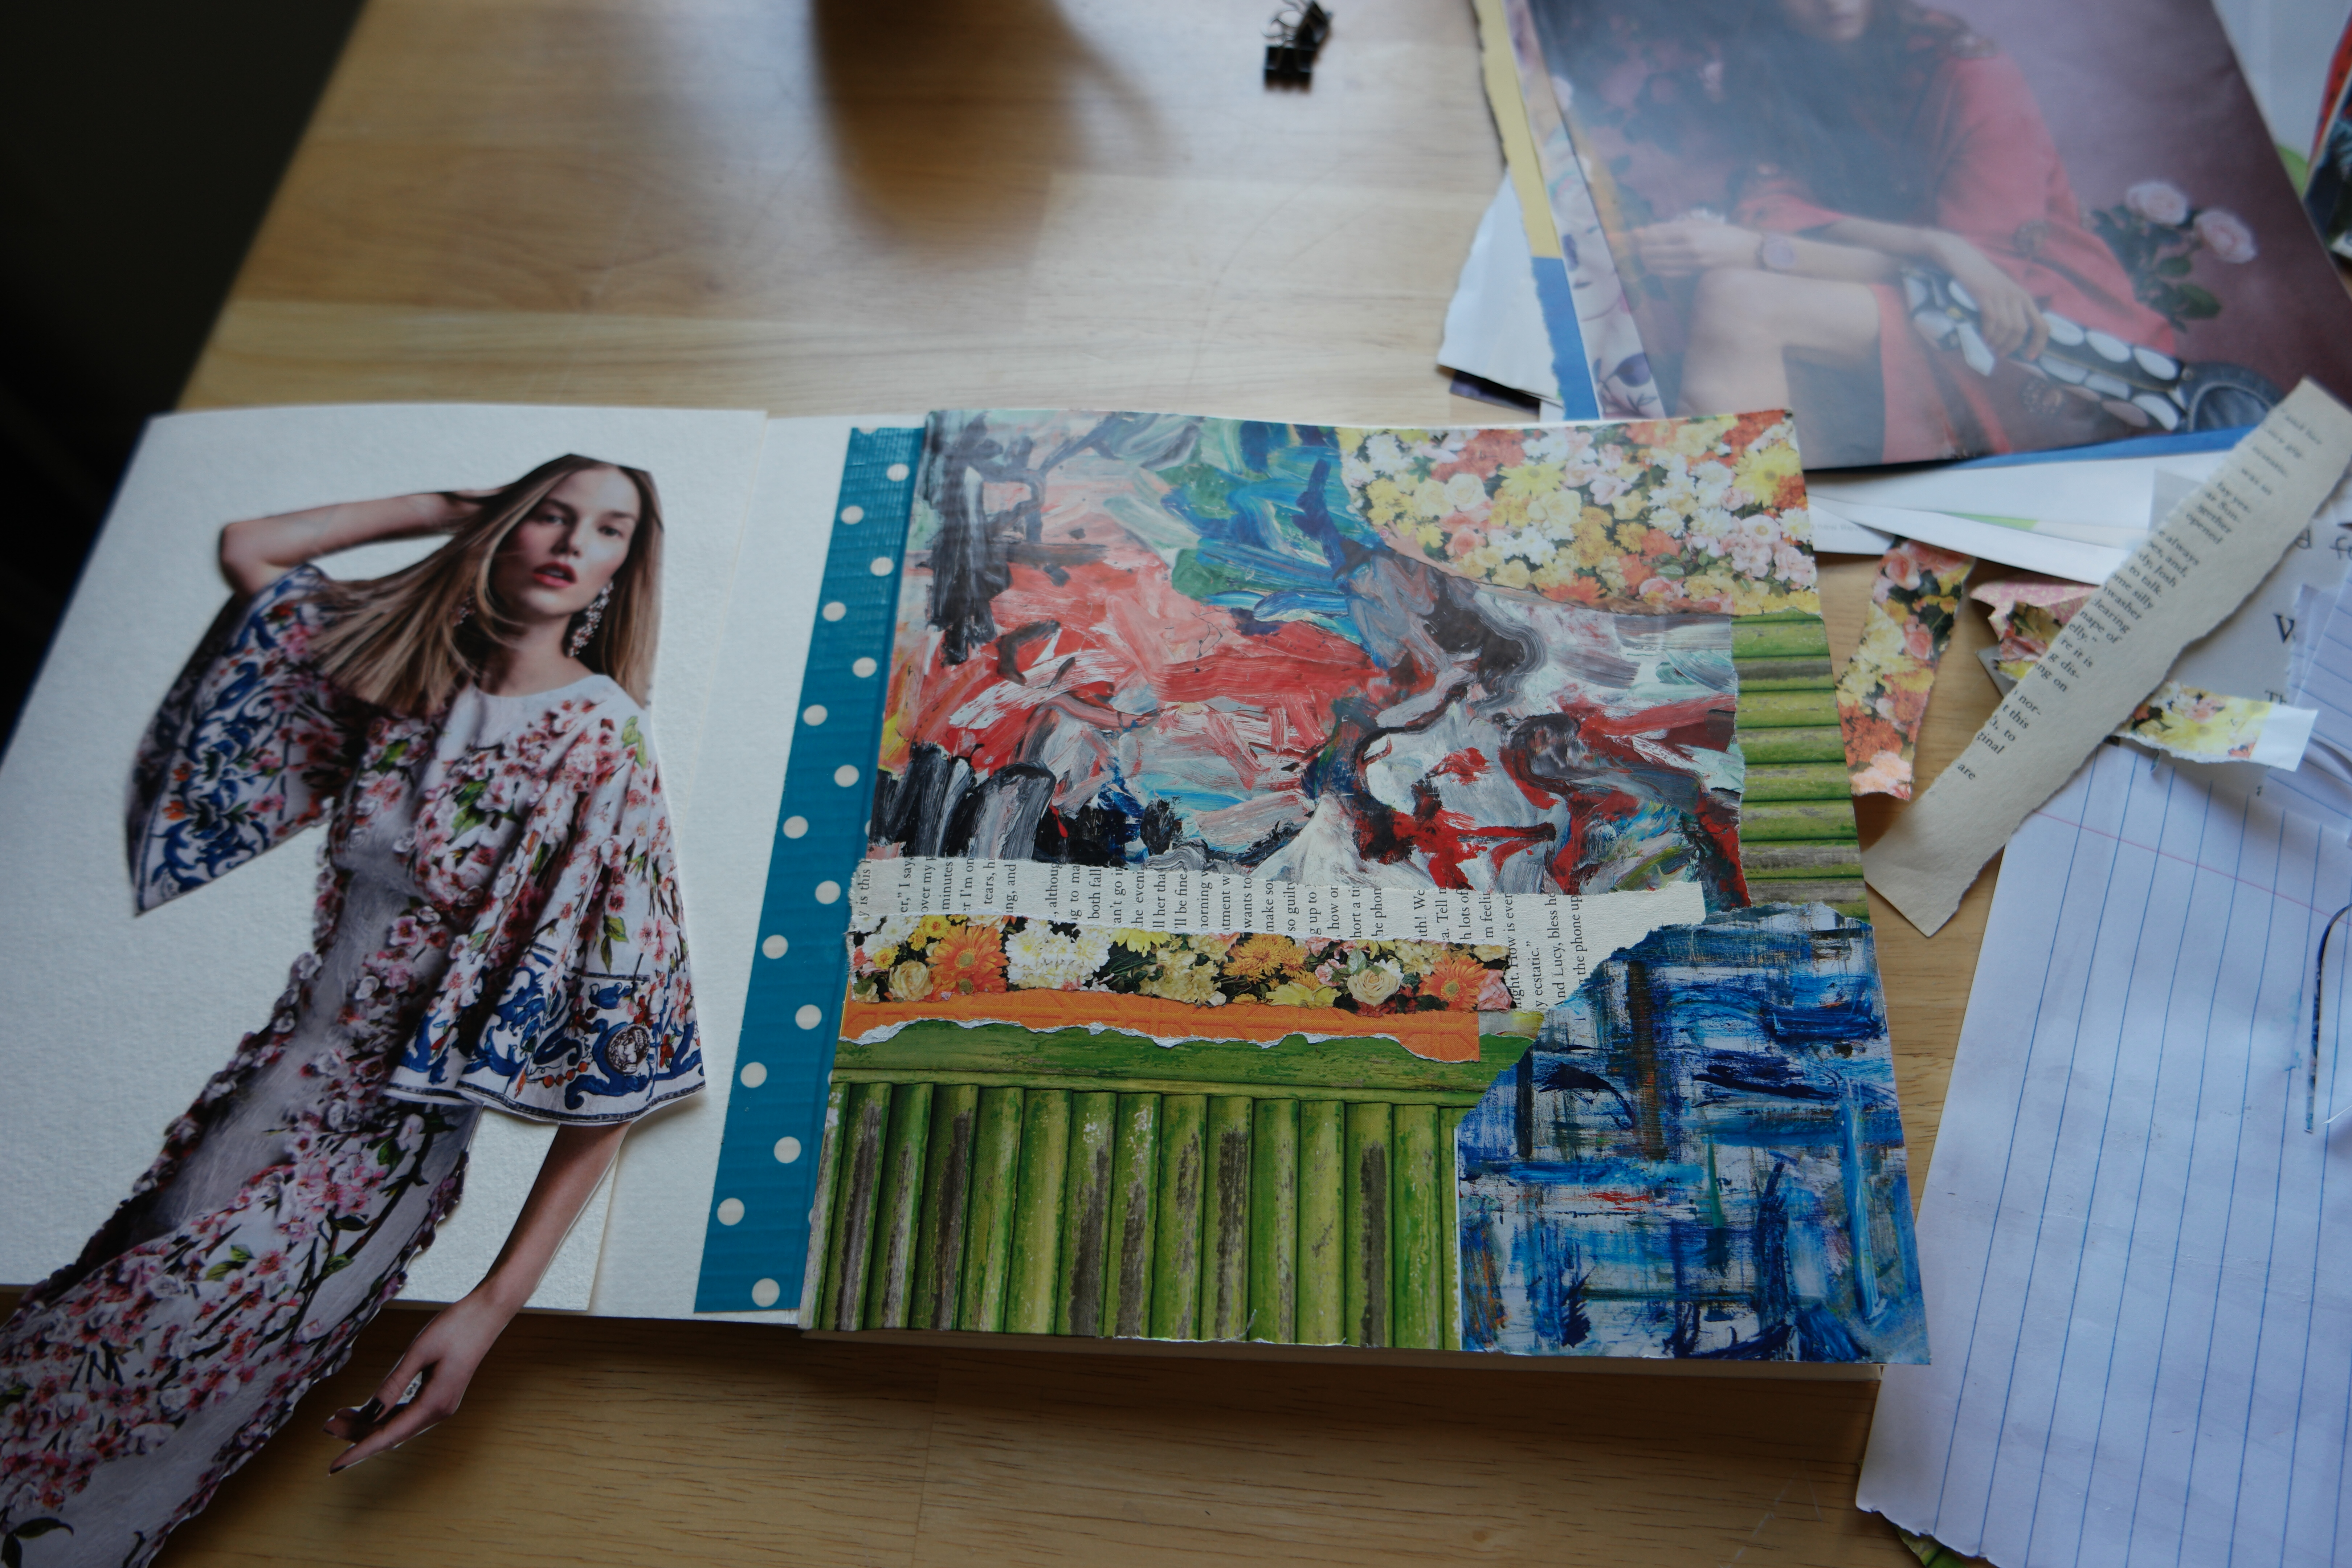 Collage journaling. Mixed media journaling. Kelly Kilmer journaling. Magazine scrap journaling. Homemade journal. Art journaling.